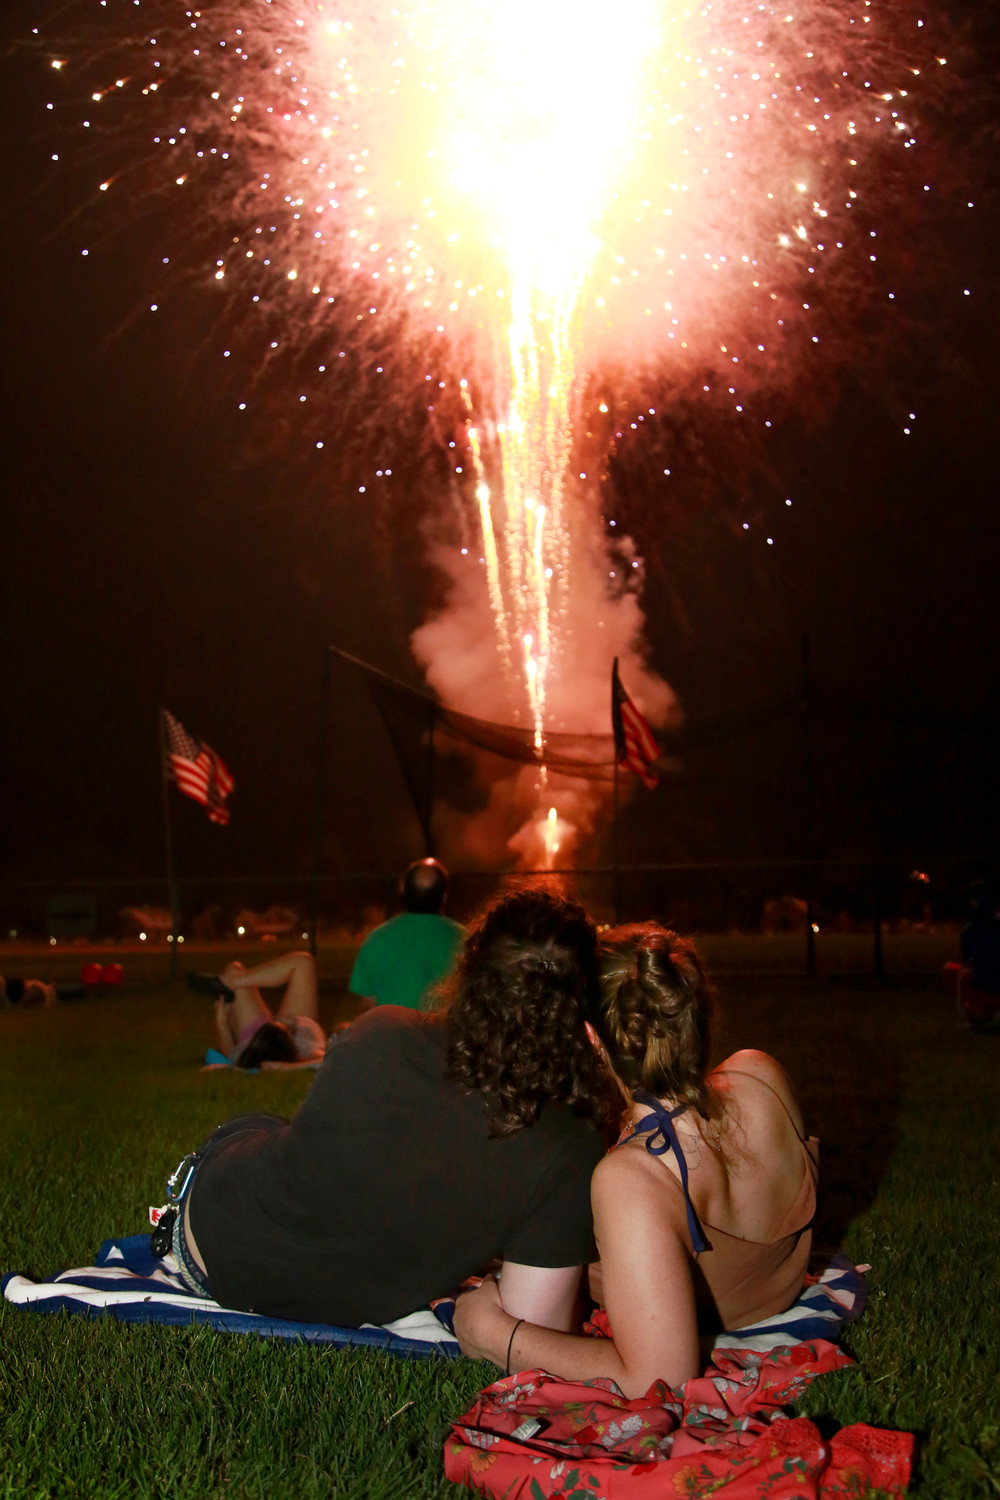 Peter Belfiore and Bridget Downes watched the fireworks light up the night sky.